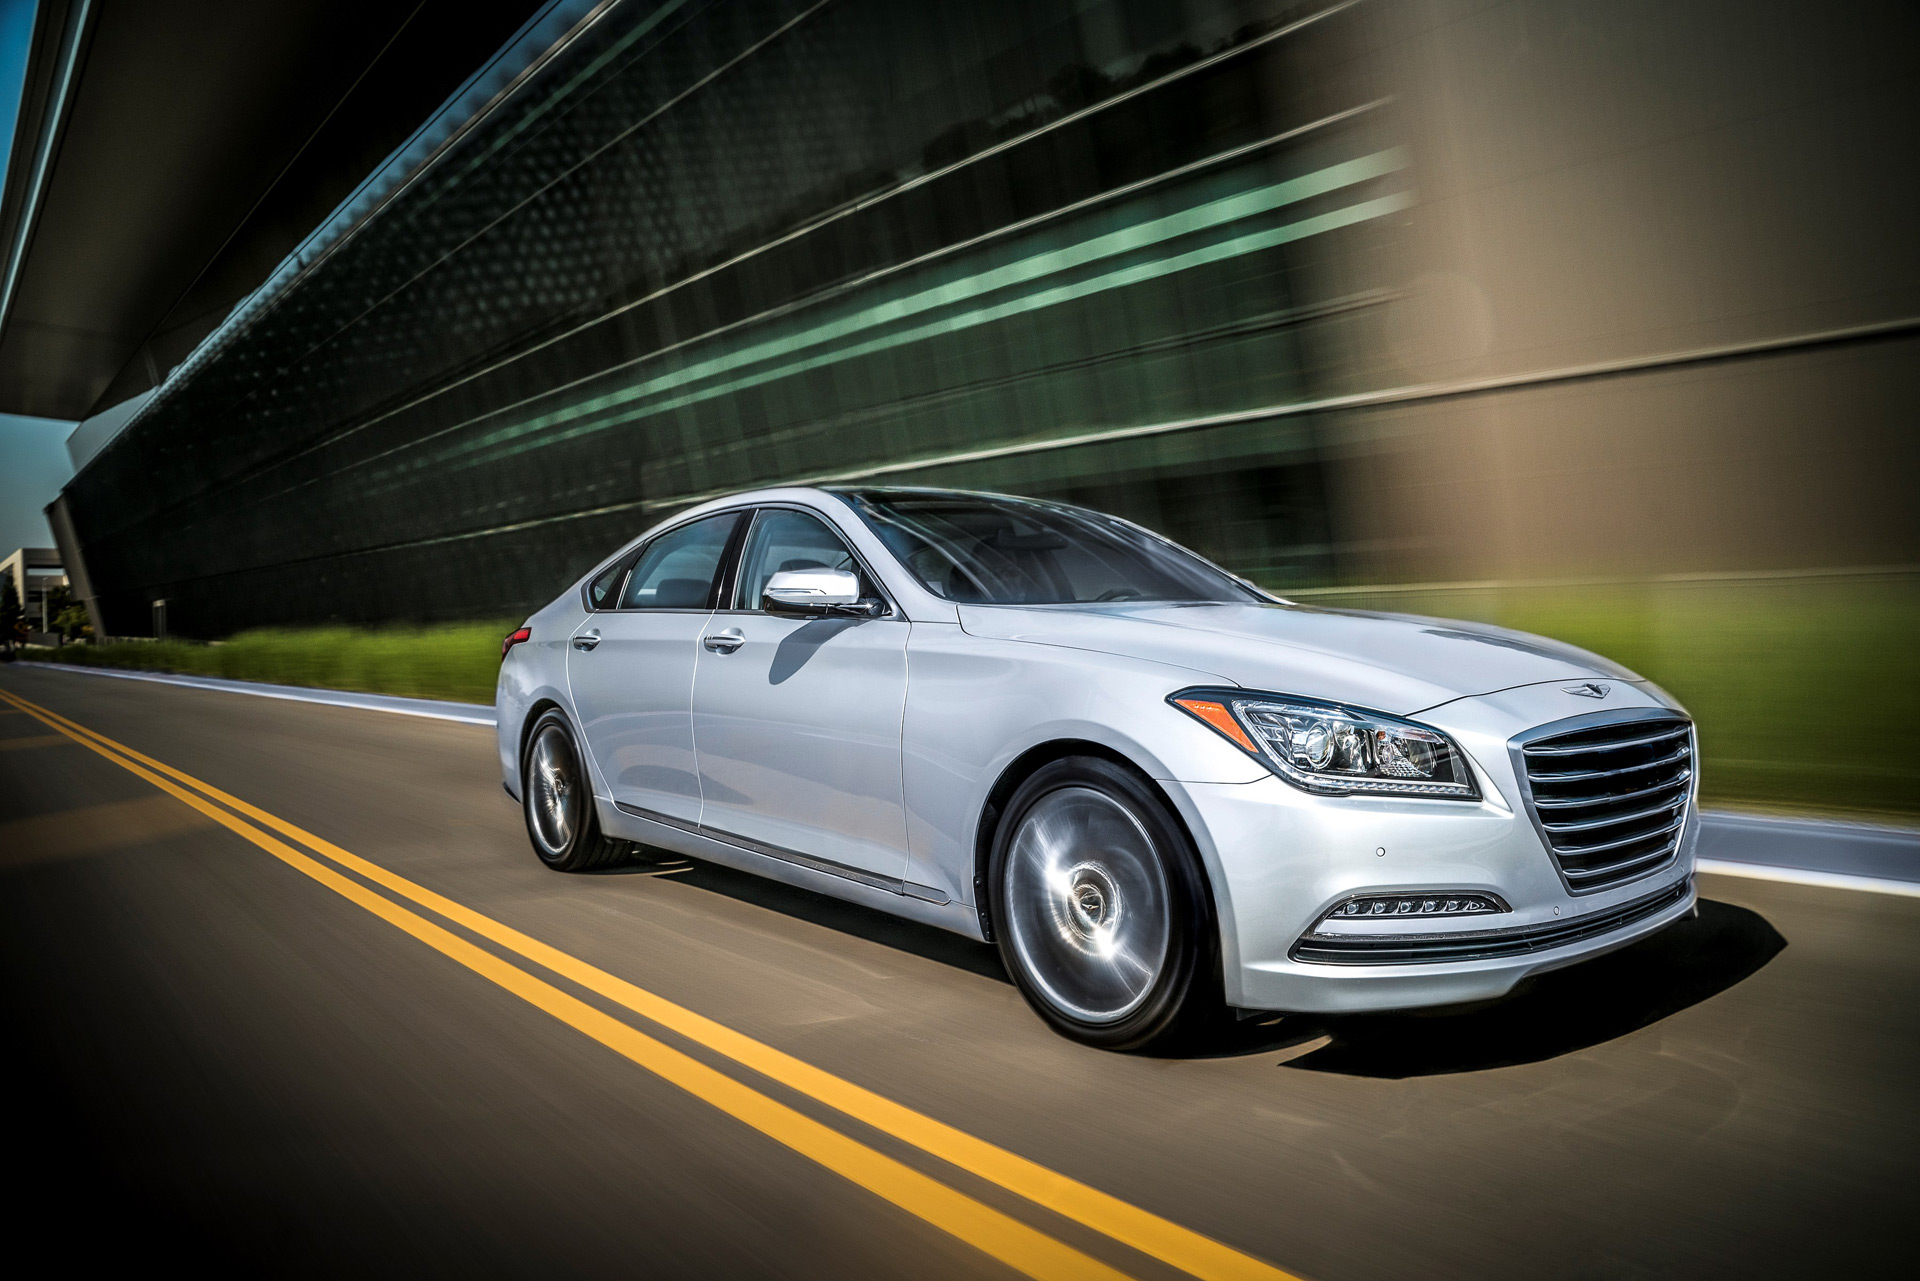 Genesis G80 2016 Meet Hyundai S Perception Of Luxury: 2017 Genesis G80 Priced From $42,350